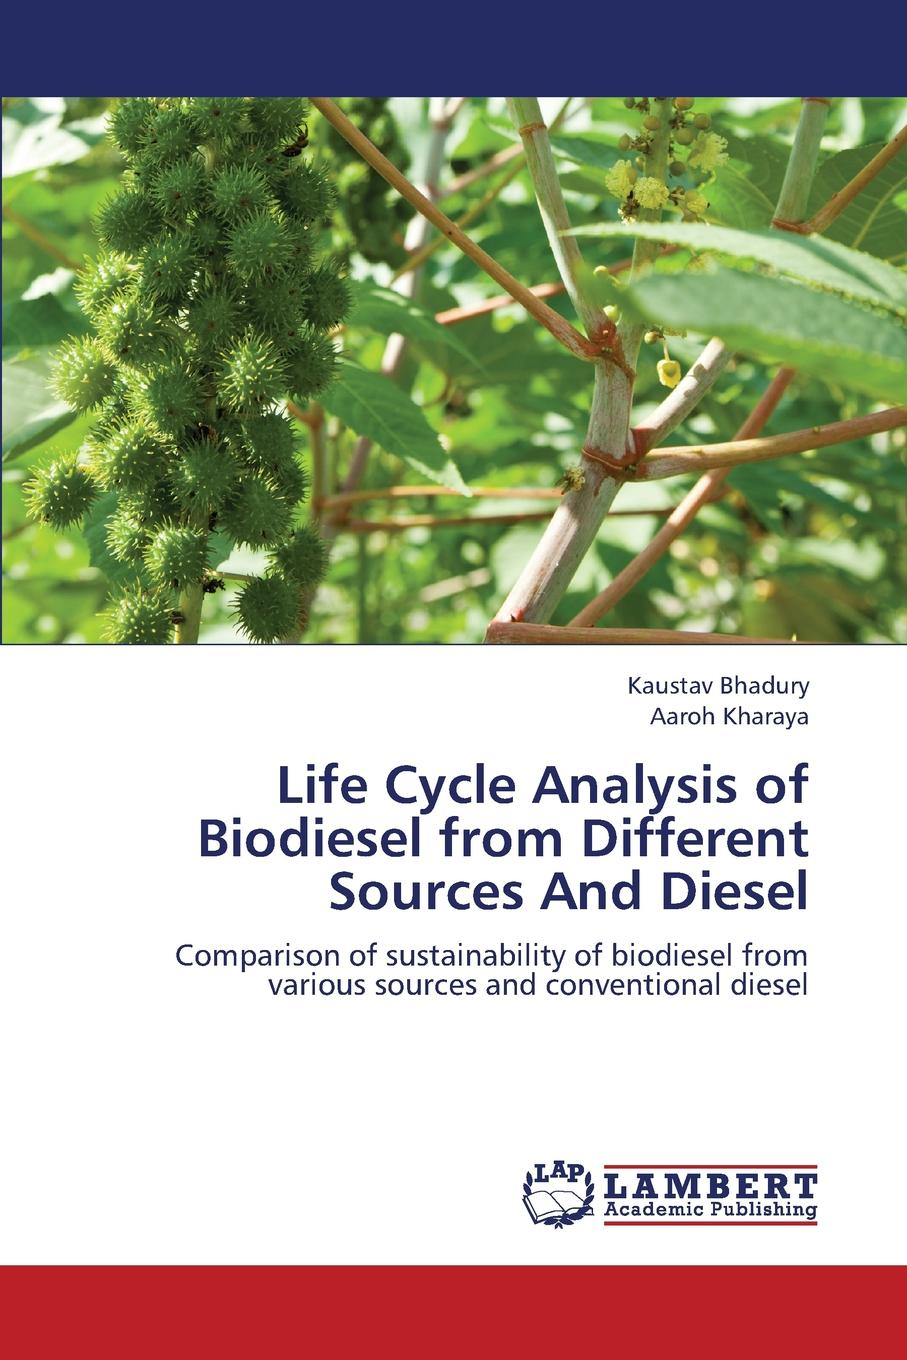 купить Bhadury Kaustav, Kharaya Aaroh Life Cycle Analysis of Biodiesel from Different Sources and Diesel по цене 8777 рублей